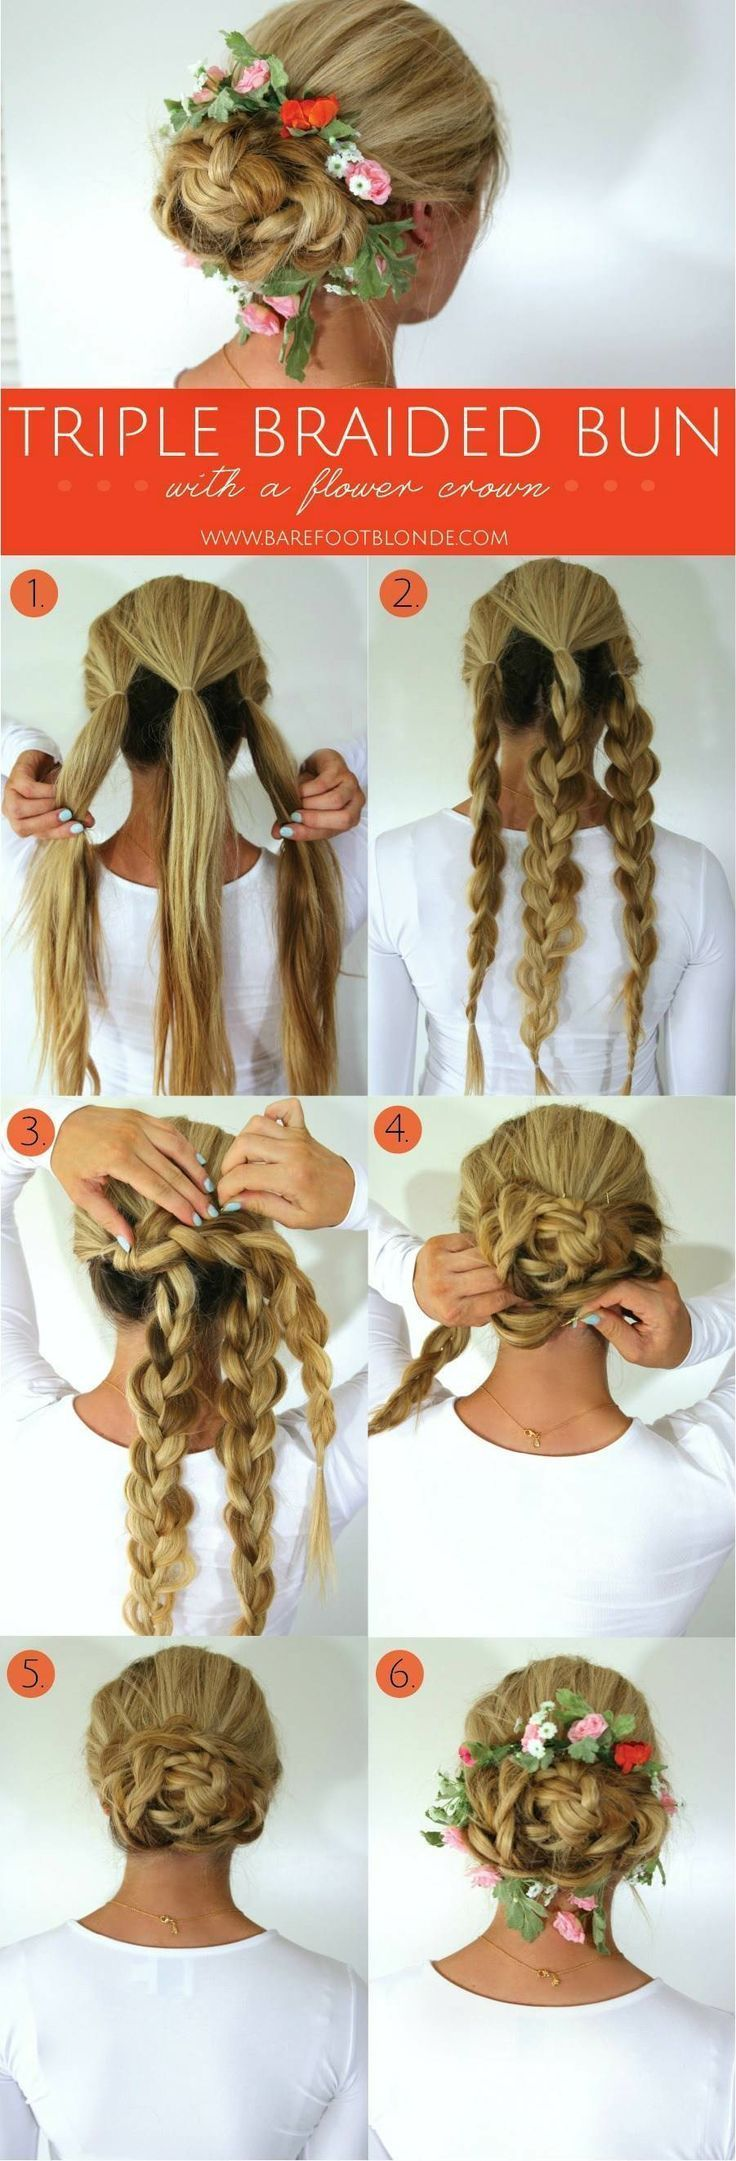 of the best braided hairstyles creative unique and crown